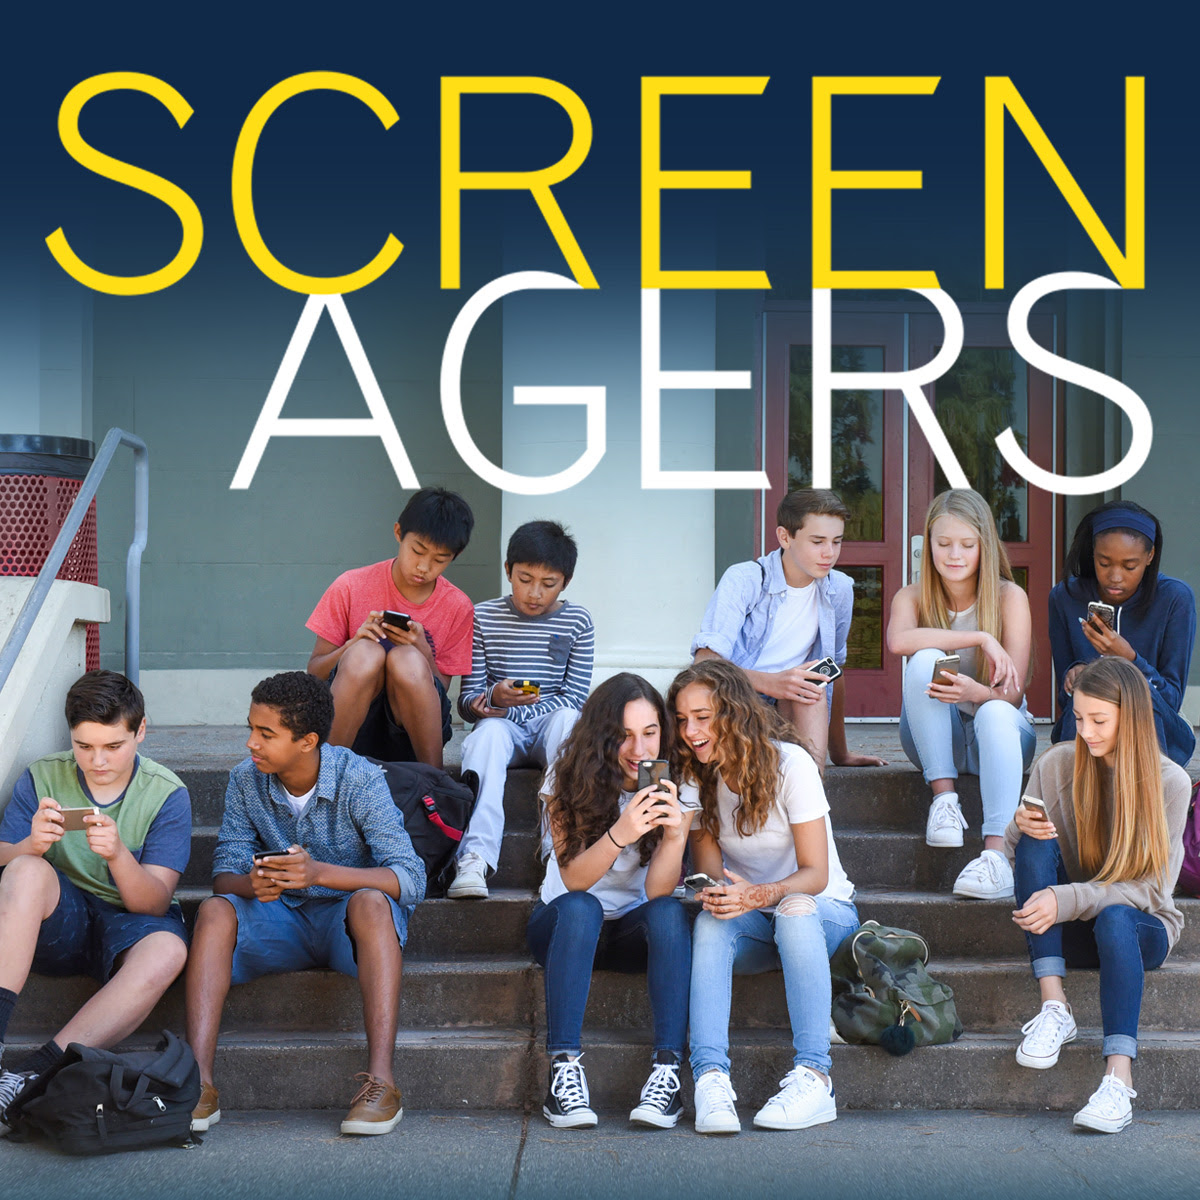 Screenagers Film Presented By Homewood Flossmoor High School